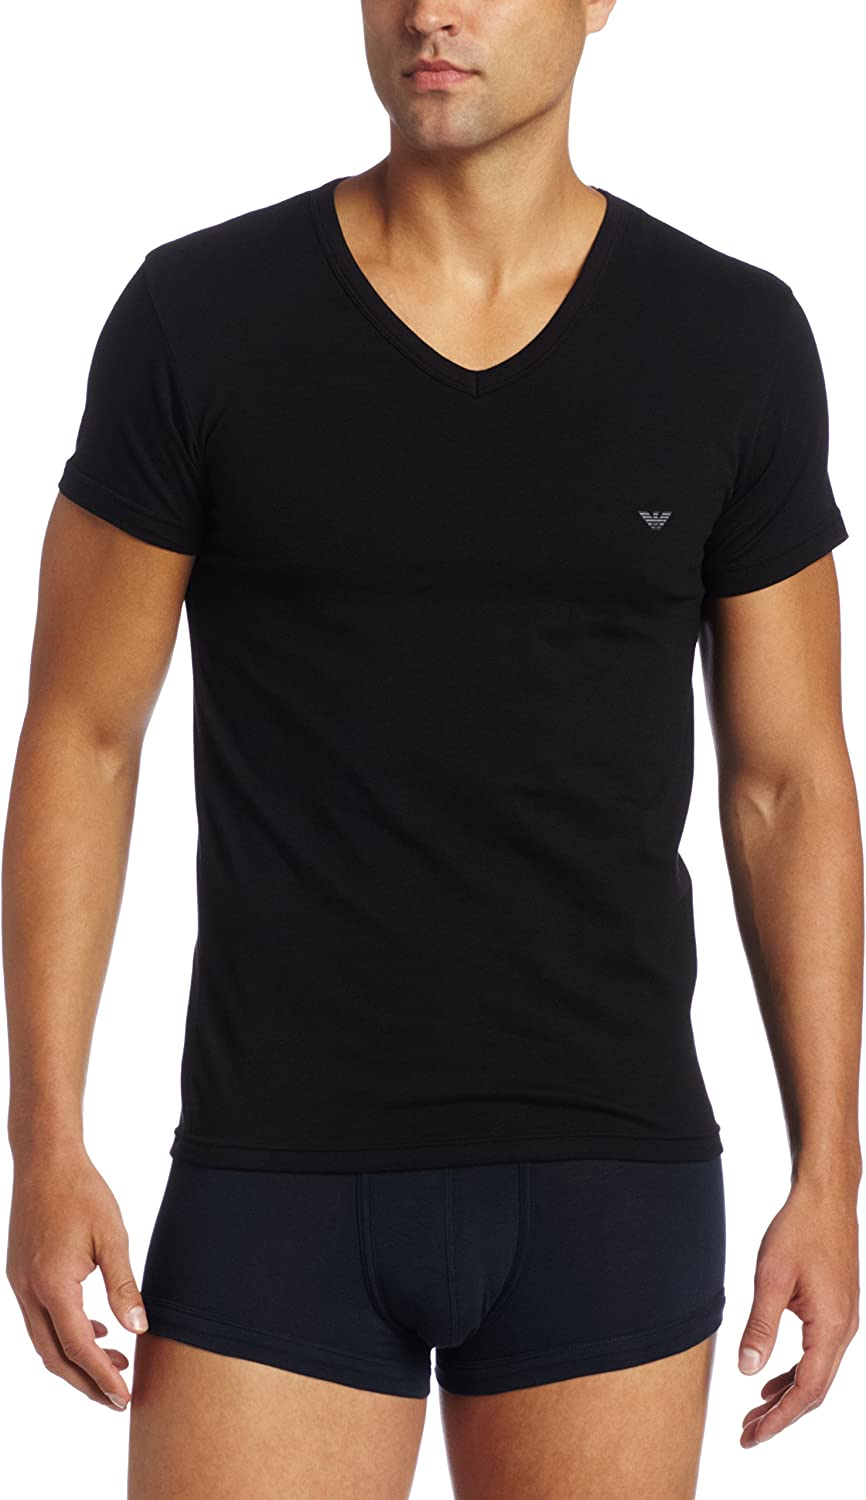 Amazon Com Emporio Armani Men S Cotton Stretch Vneck Clothing